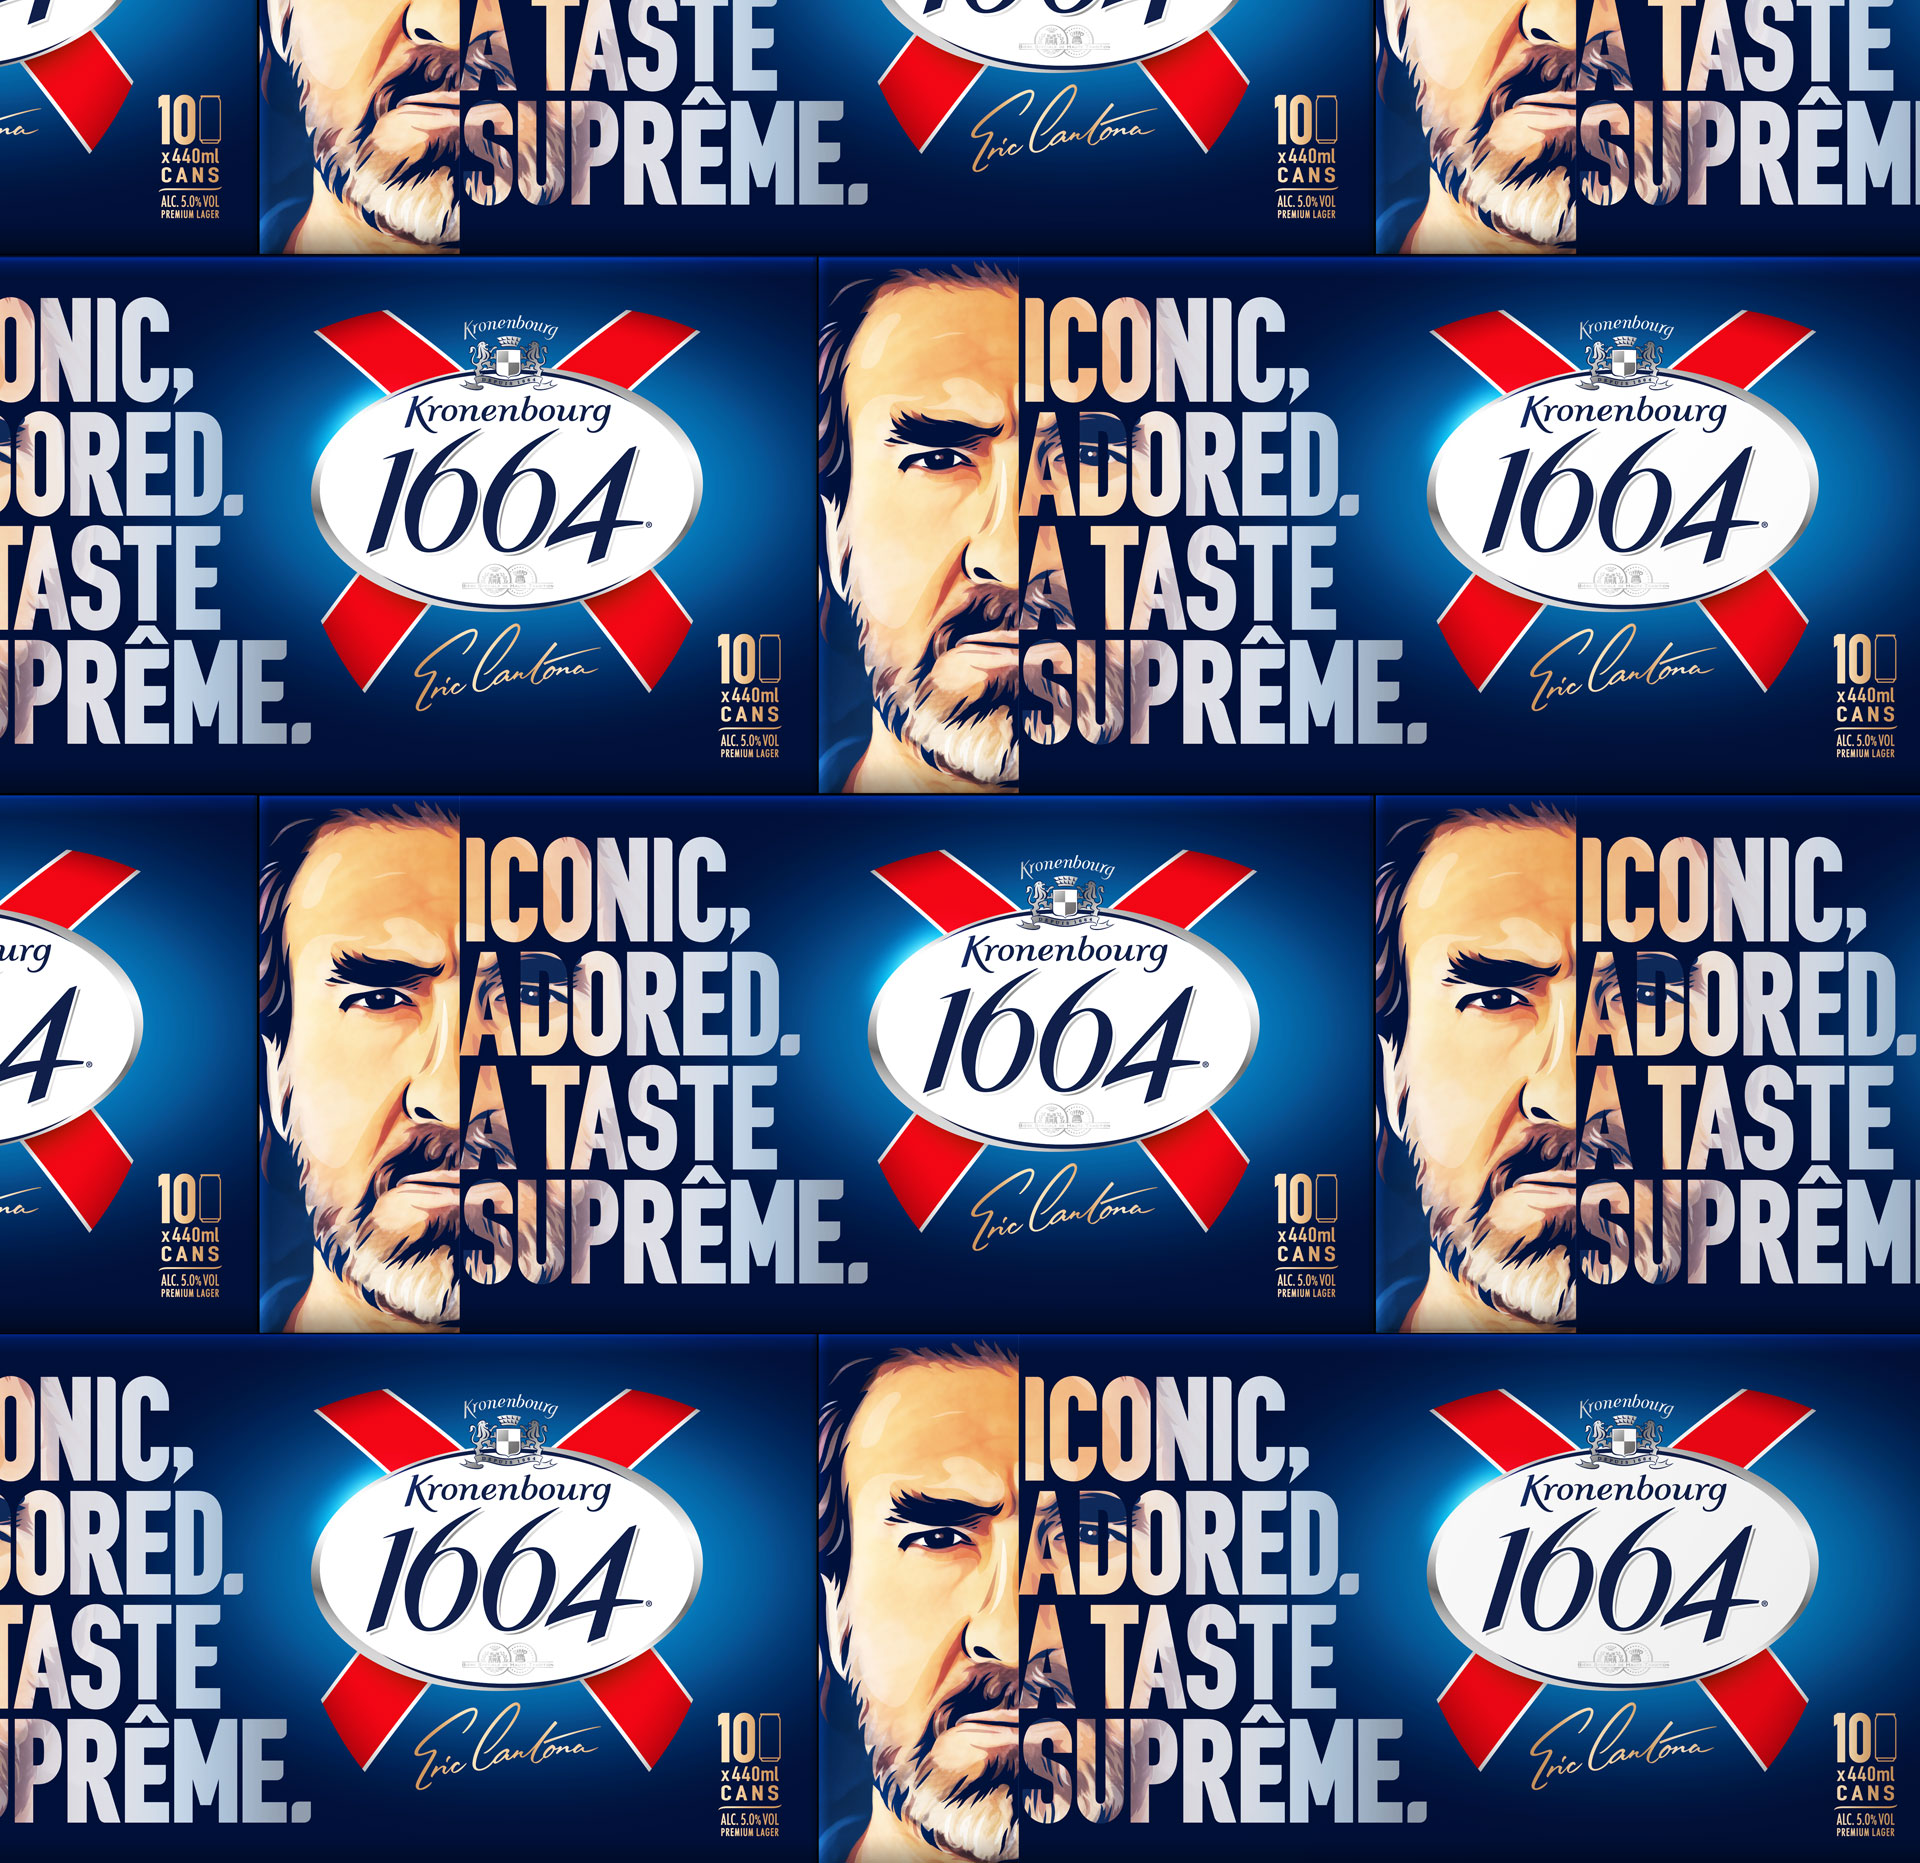 Kronenbourg Cantona multi pack packaging design